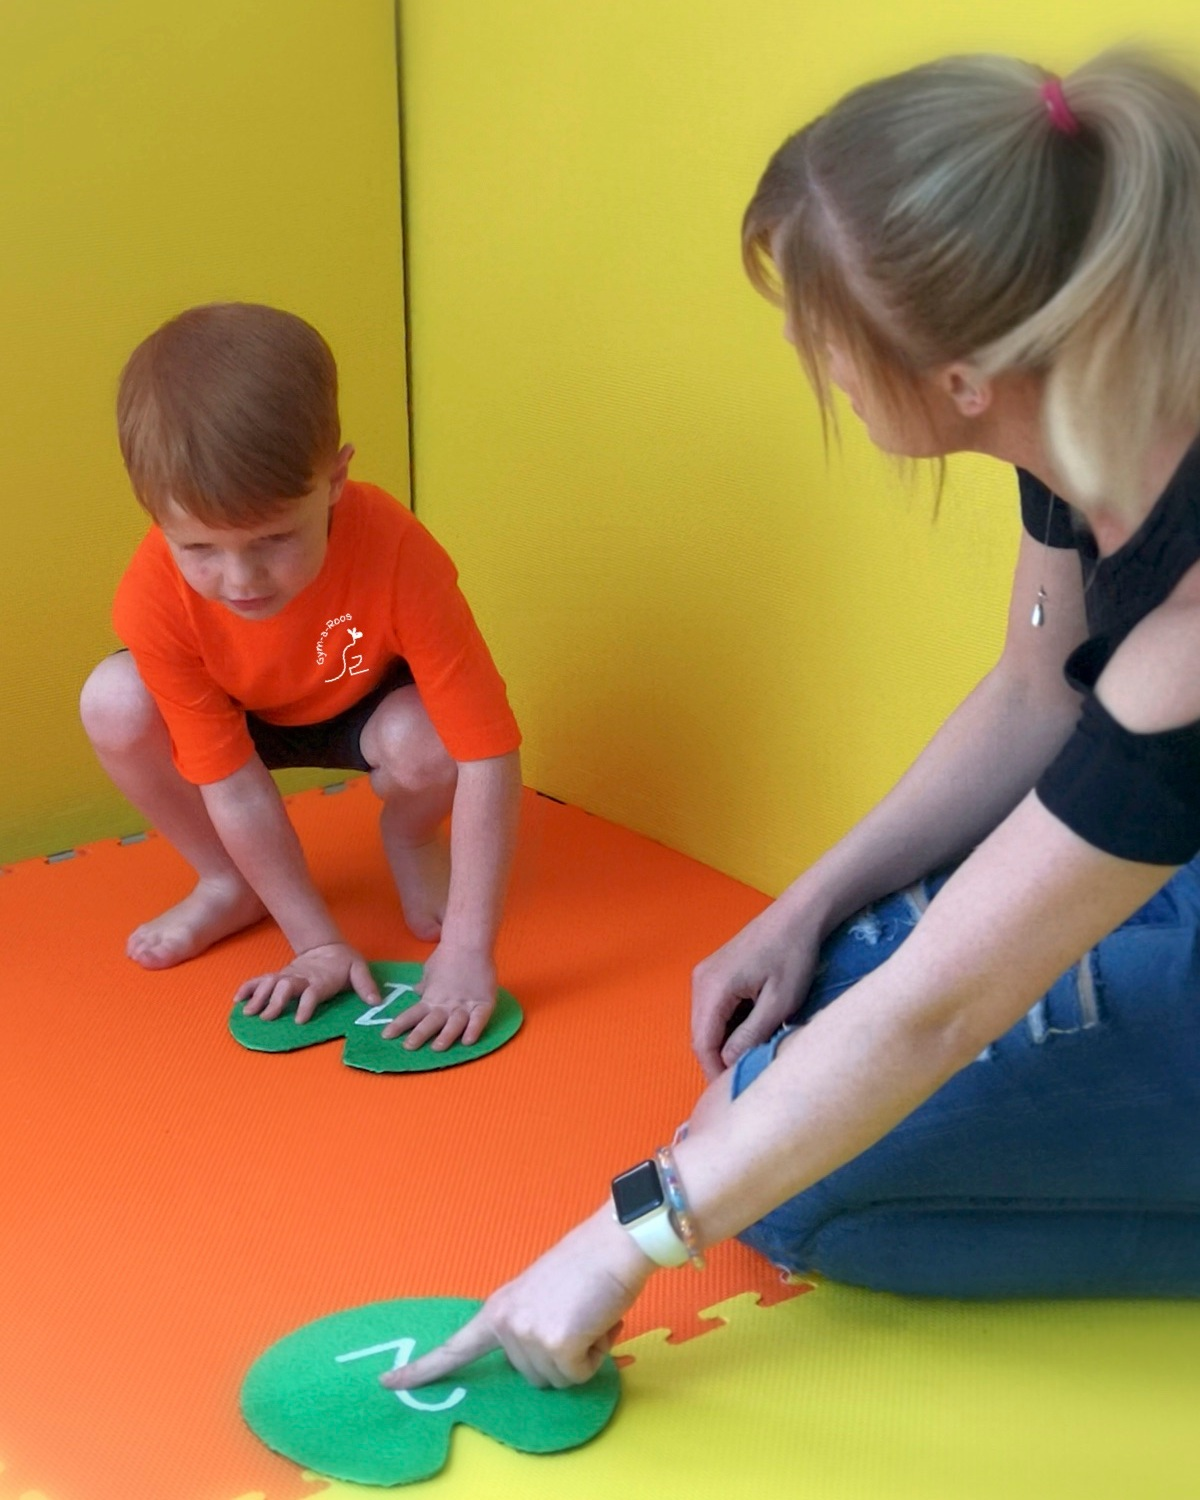 PARENT & CHILD GYMNASTIC CLASSES    Fun, energetic classes for parents and toddlers aged 18 months - 3 years